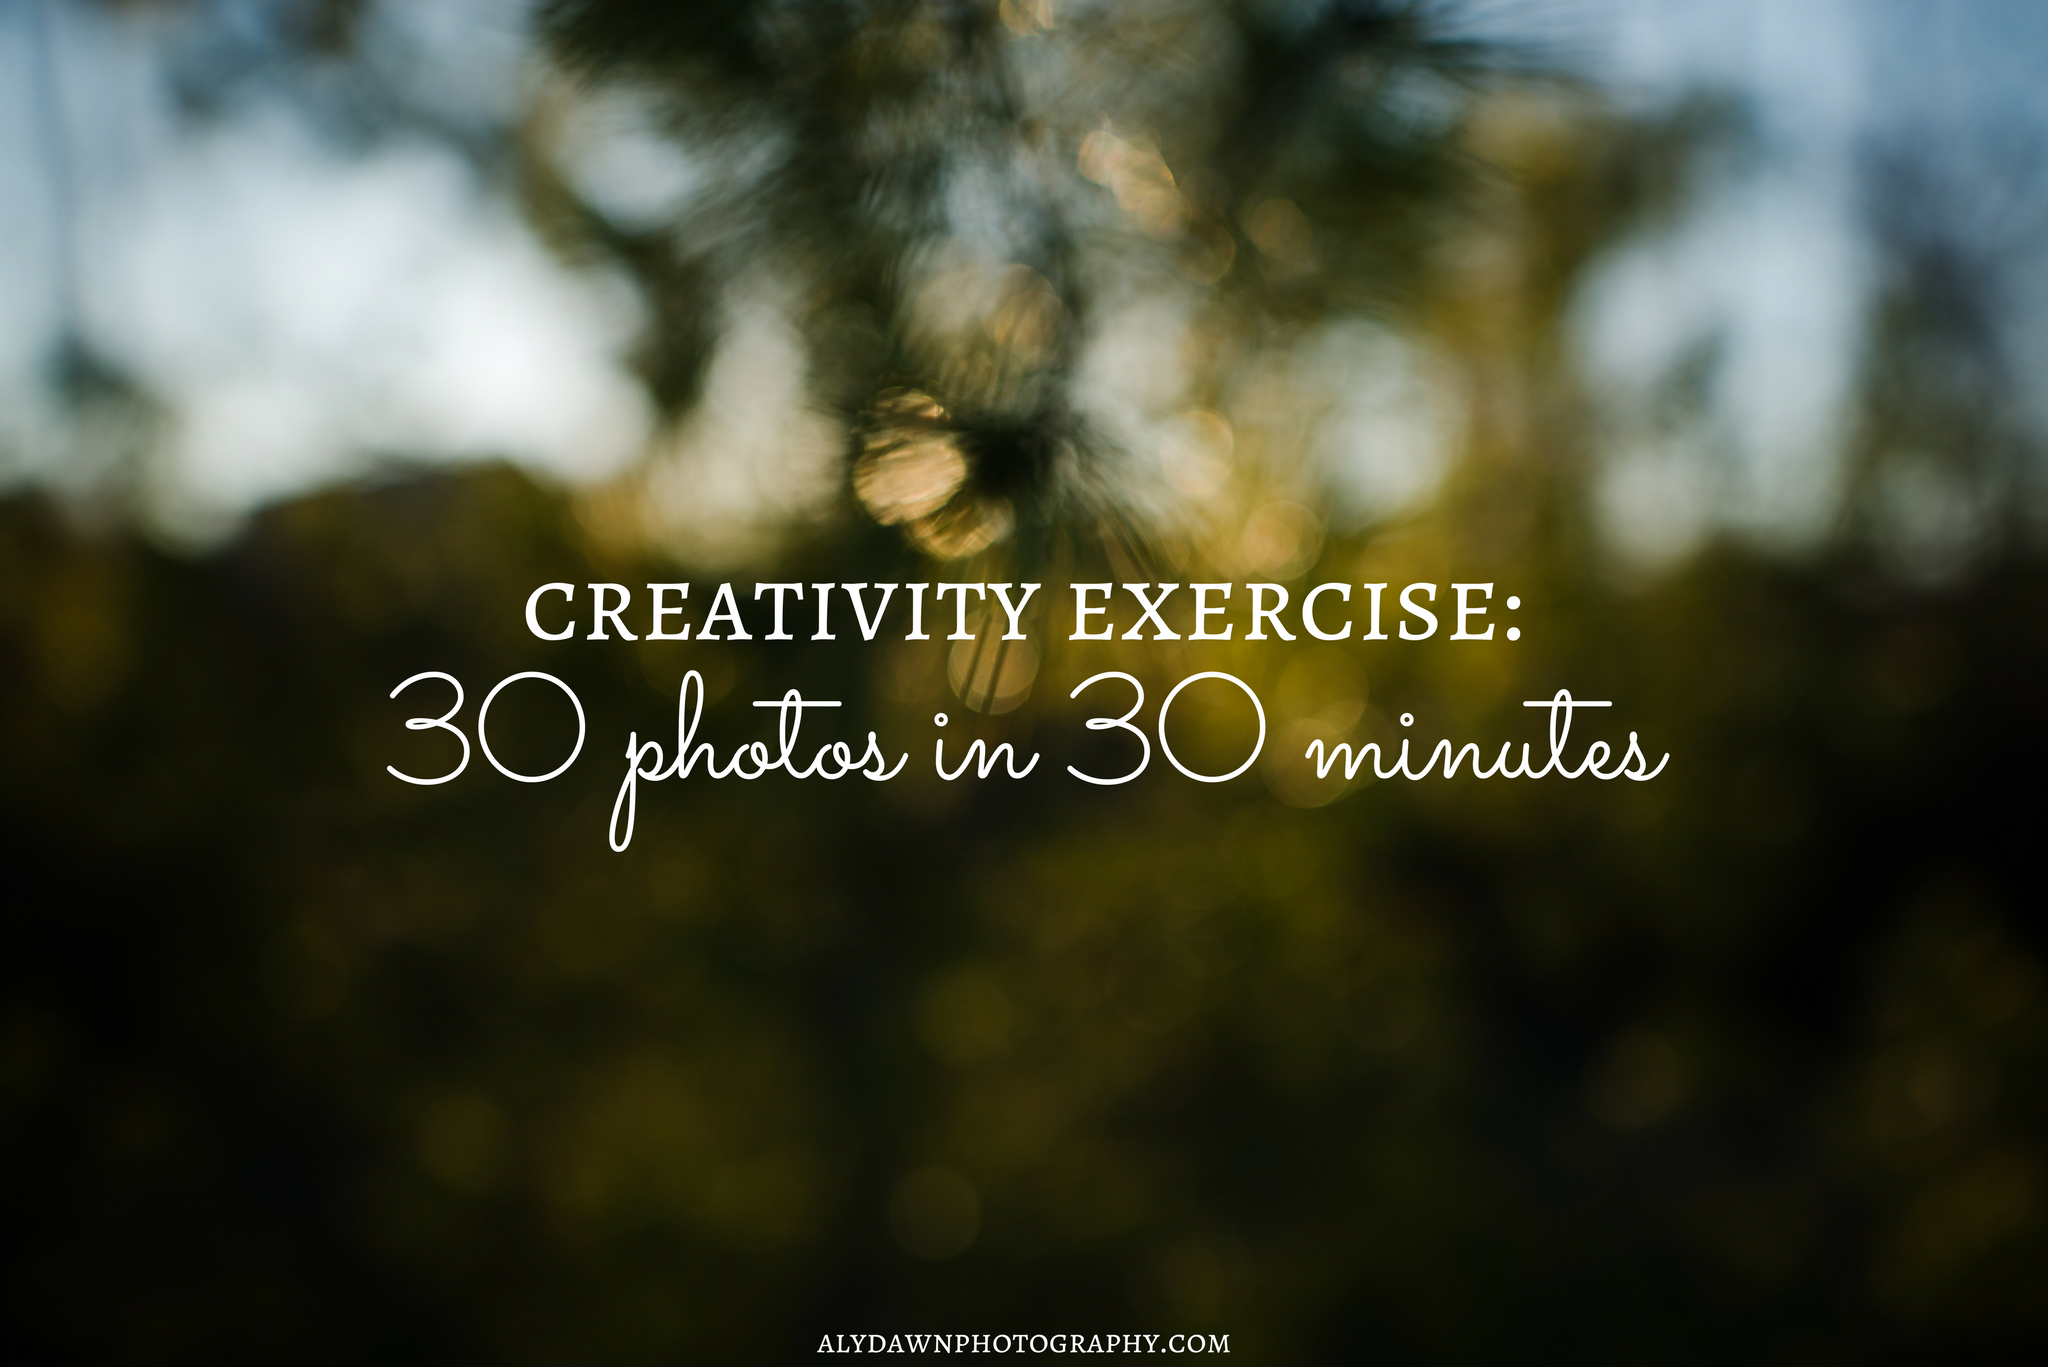 Creativity Exercise: 30 Photos in 30 Minutes